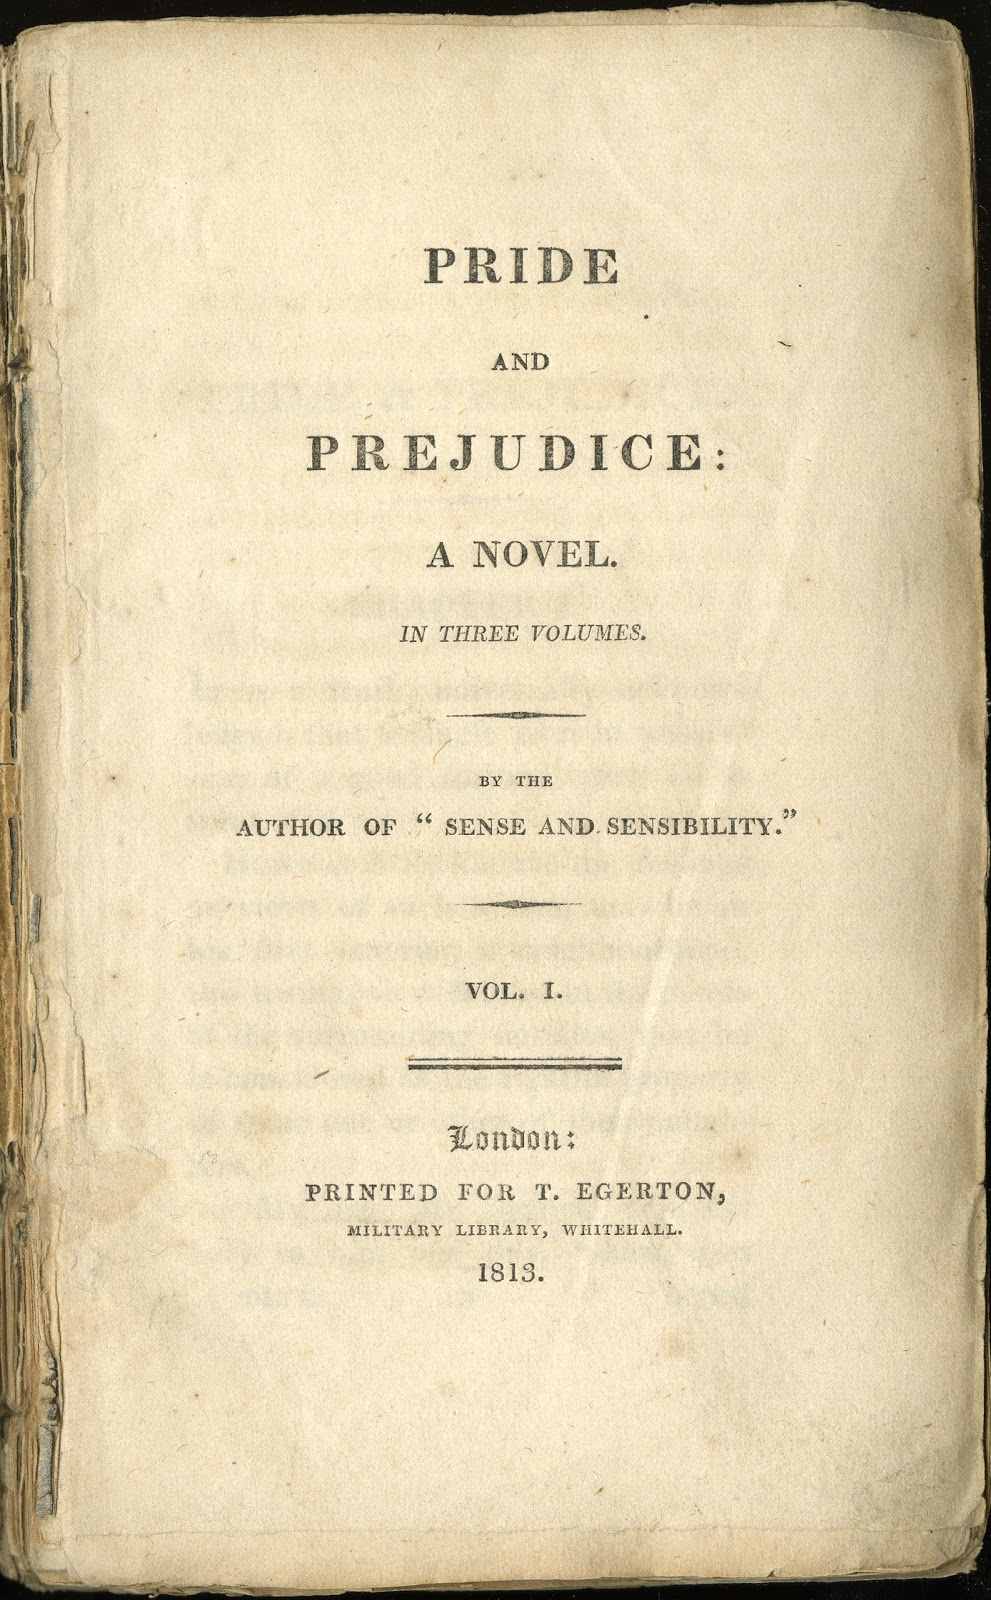 a summary of the book pride and prejudice by jane austen Free summary and analysis of the events in jane austen's pride and prejudice that won't make you snore we promise.